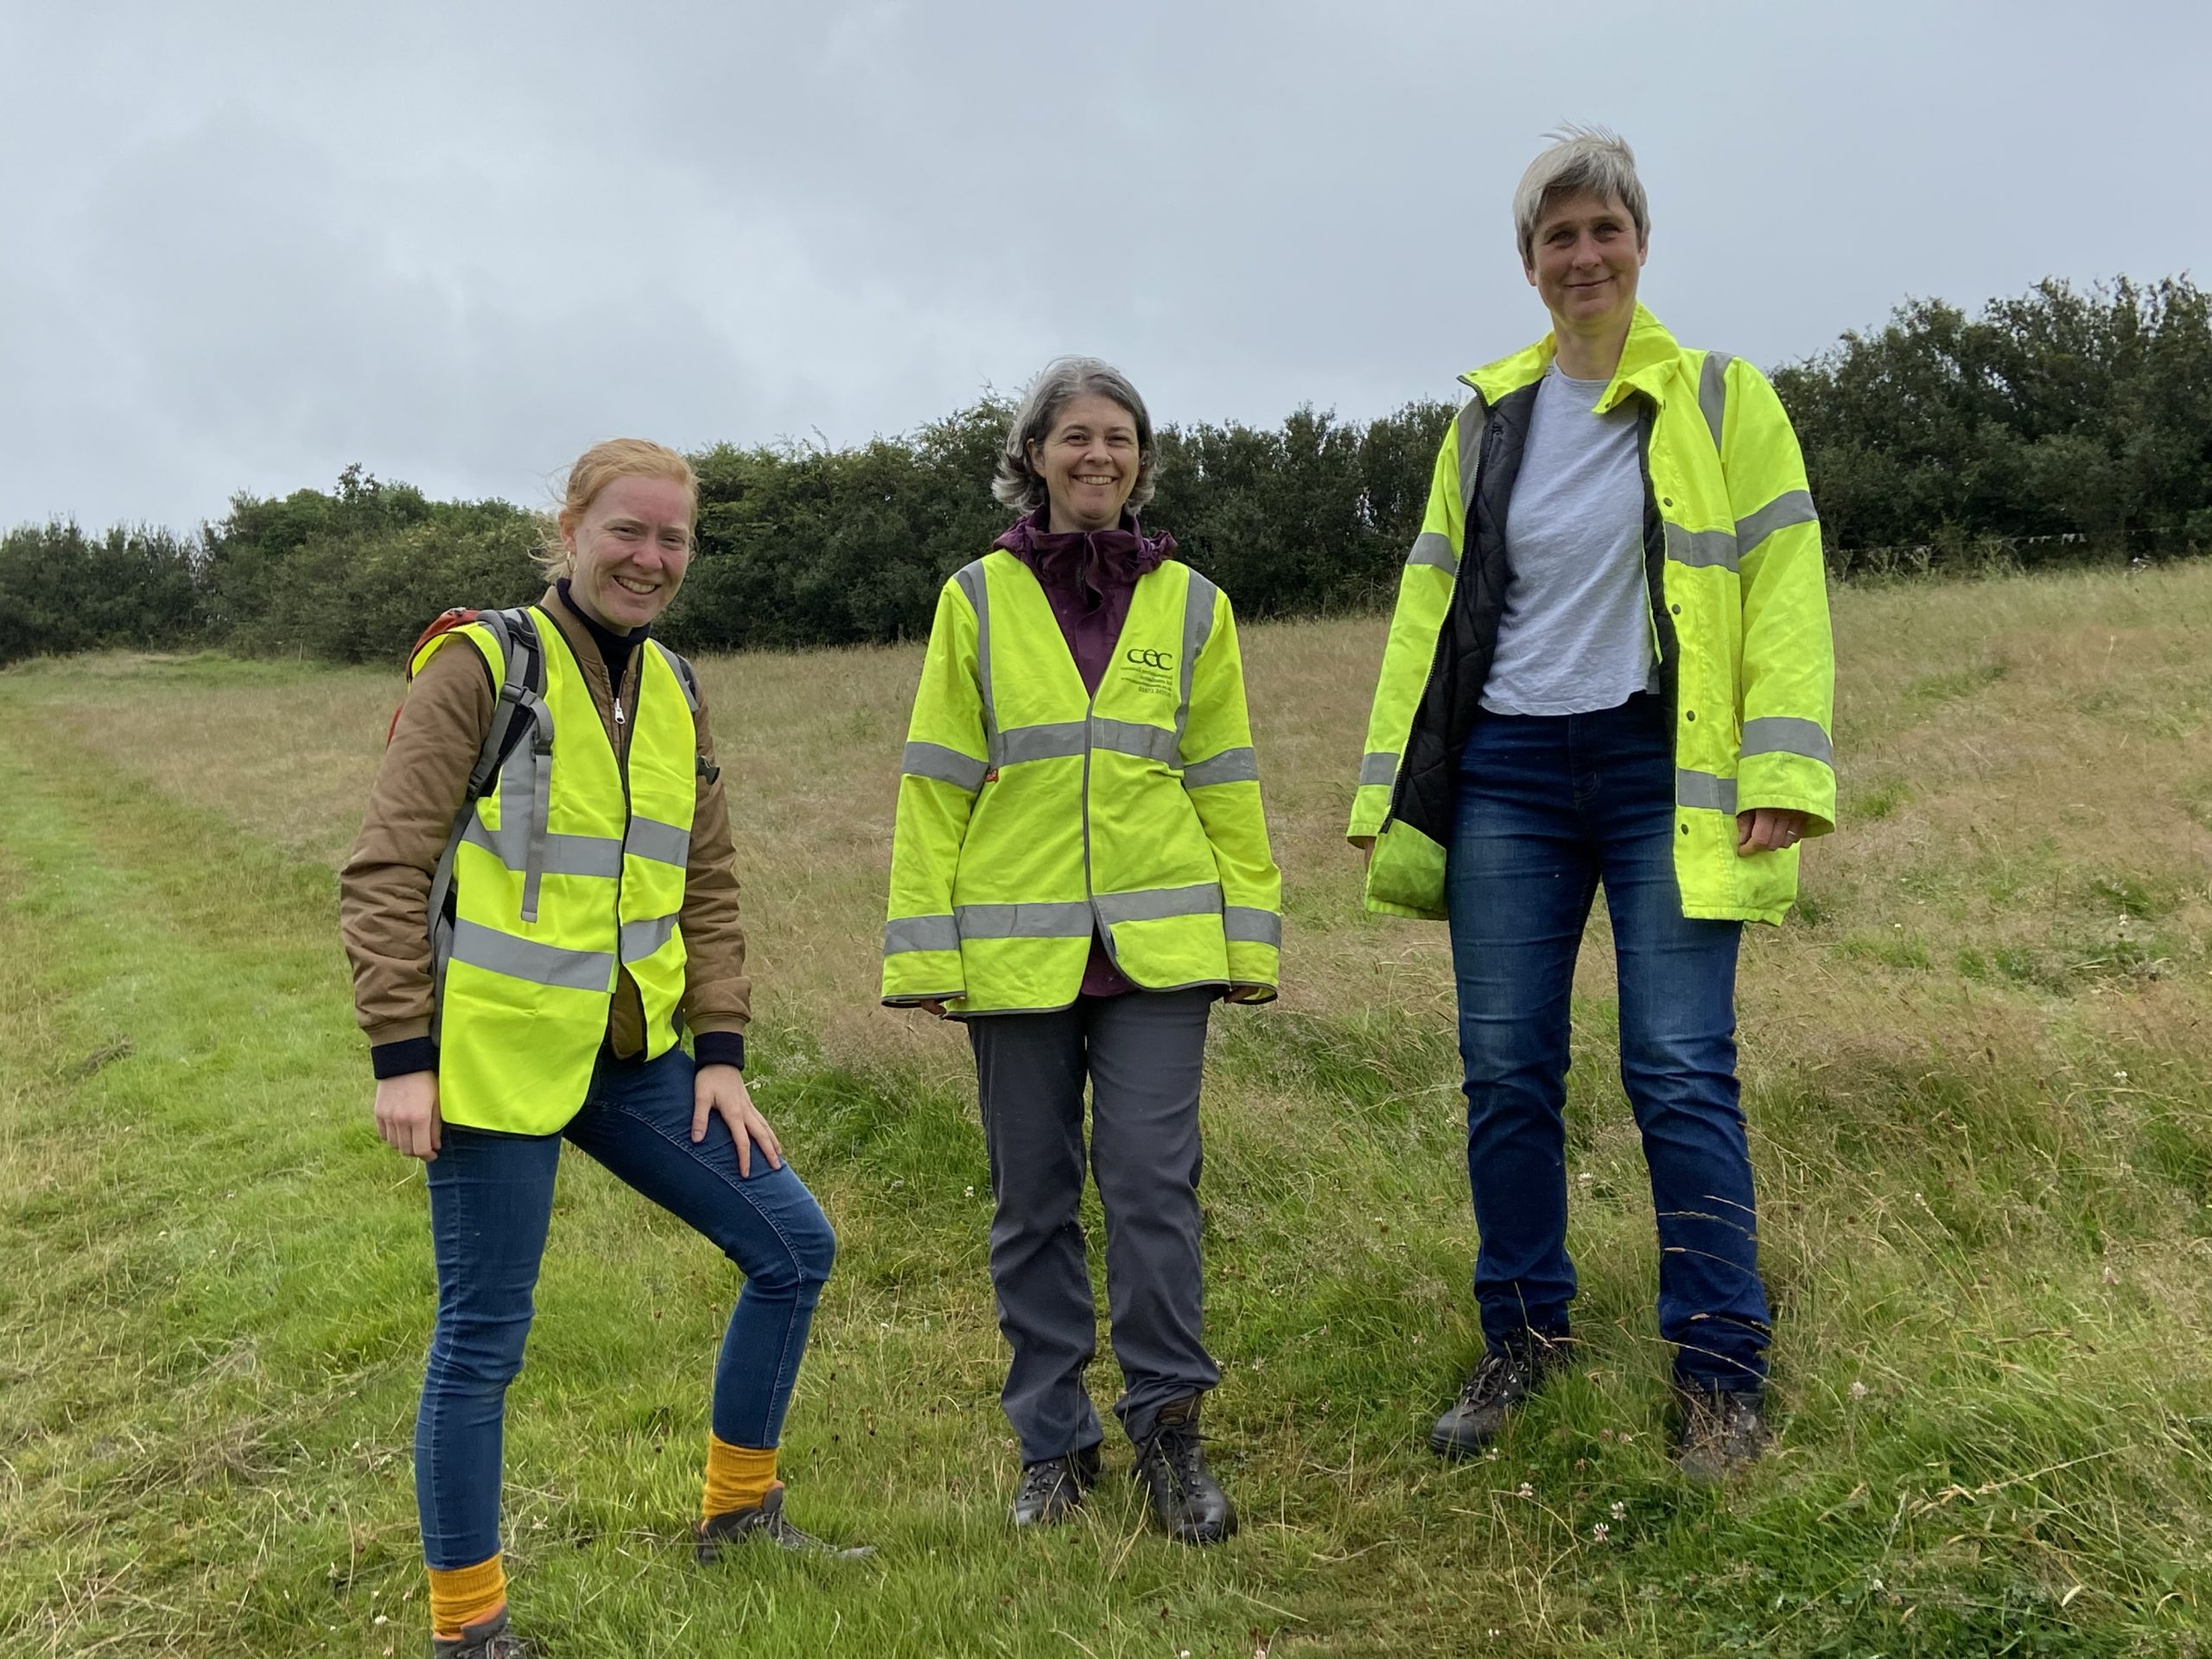 Building with Nature Director visits Langarth Garden Village